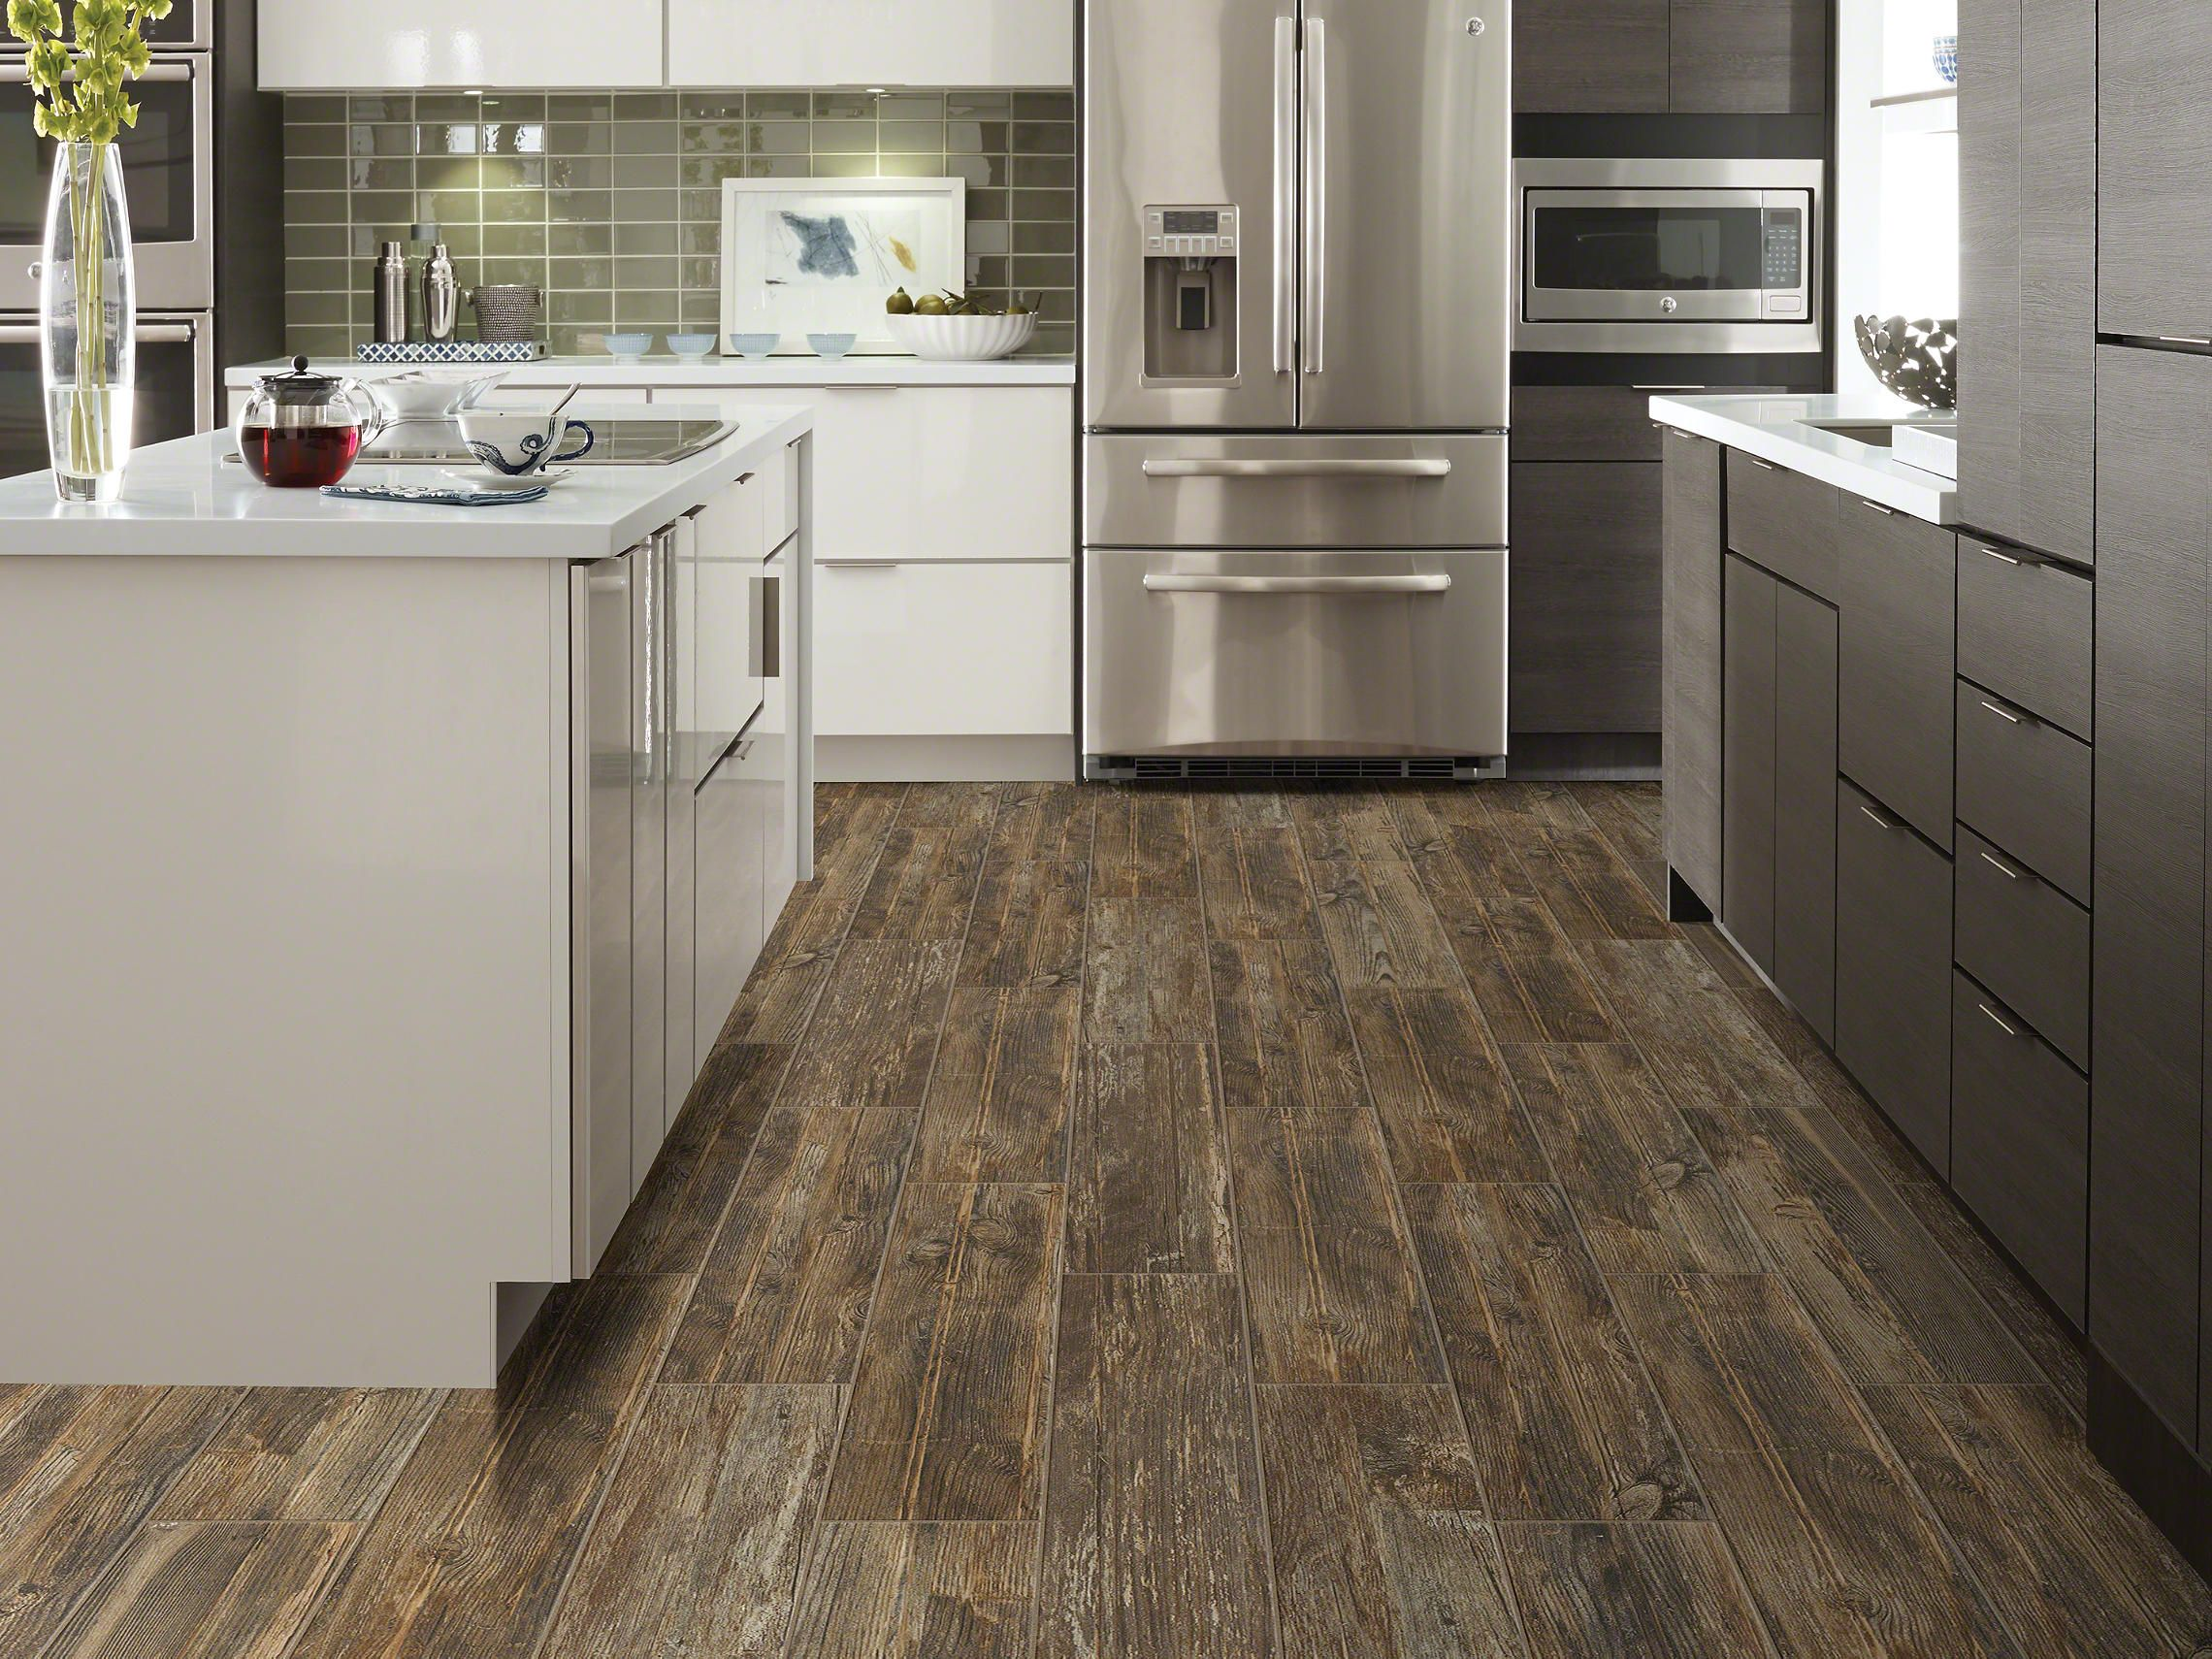 Tile And Stone Wall And Flooring Tiles Shaw Flooring Hardwood Wood Floors Hickory Hardwood Floors